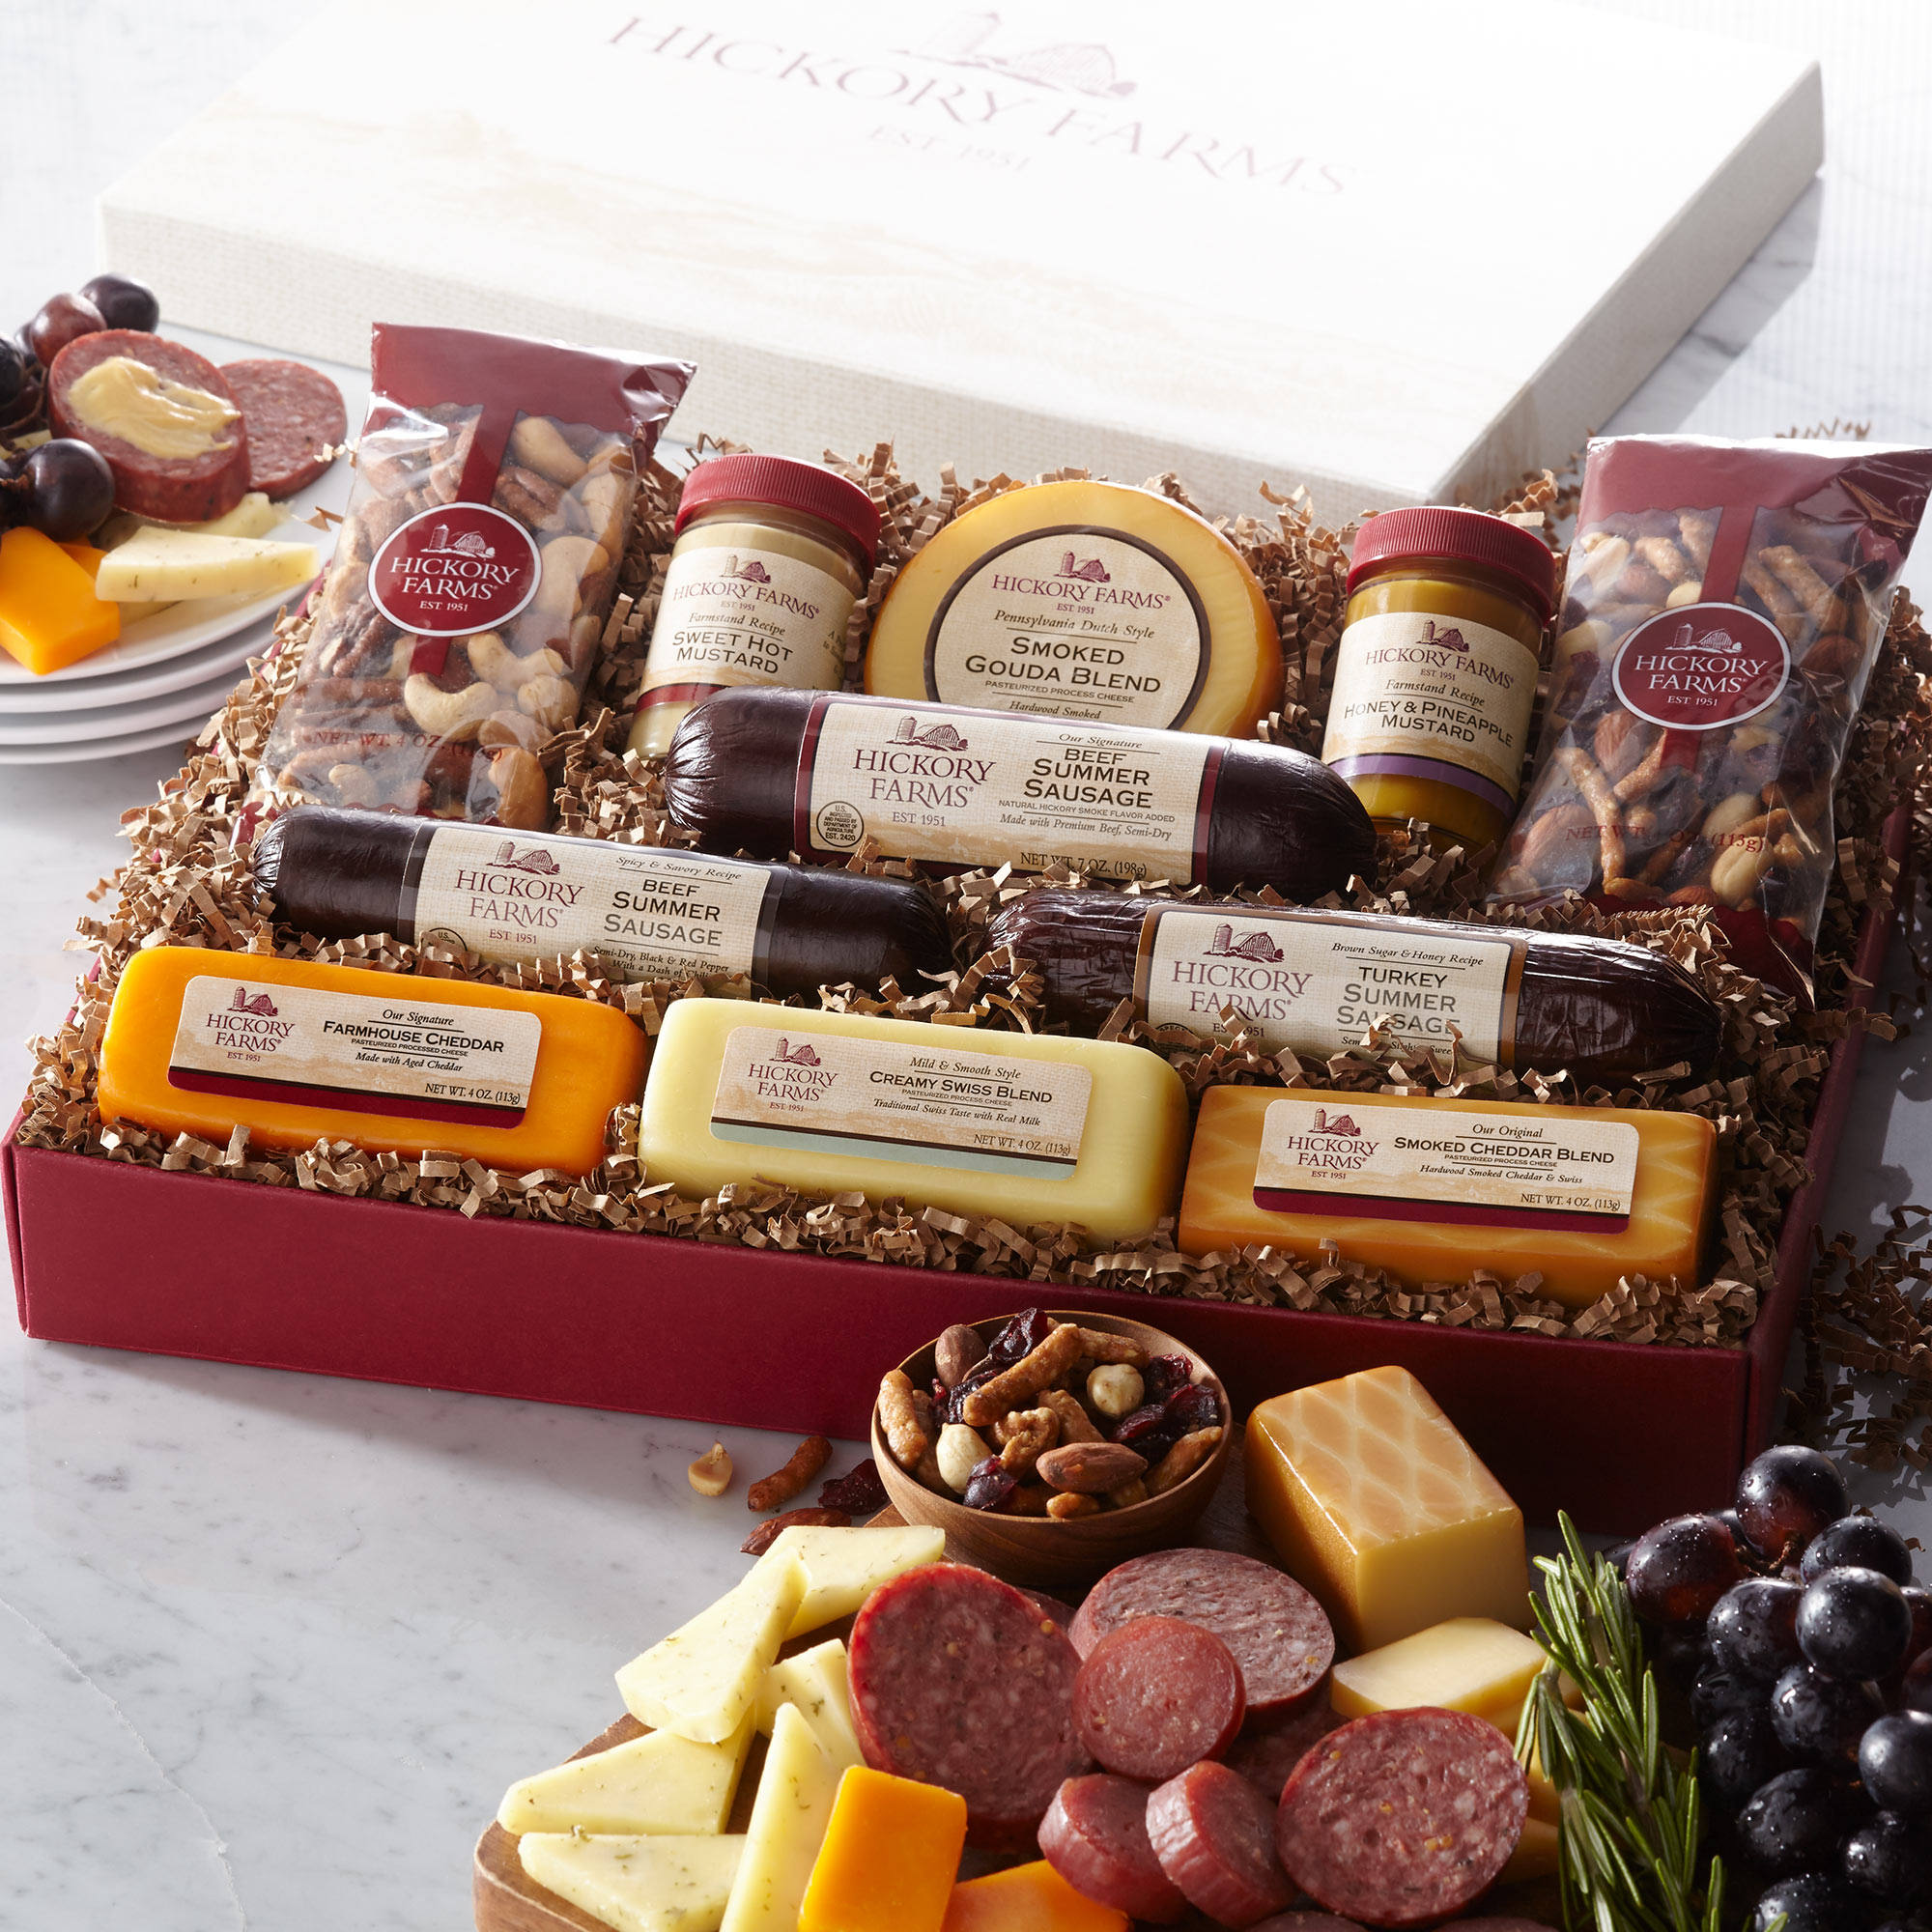 Party Planner Gift Box Gift | Purchase Our Gourmet Sausage ...